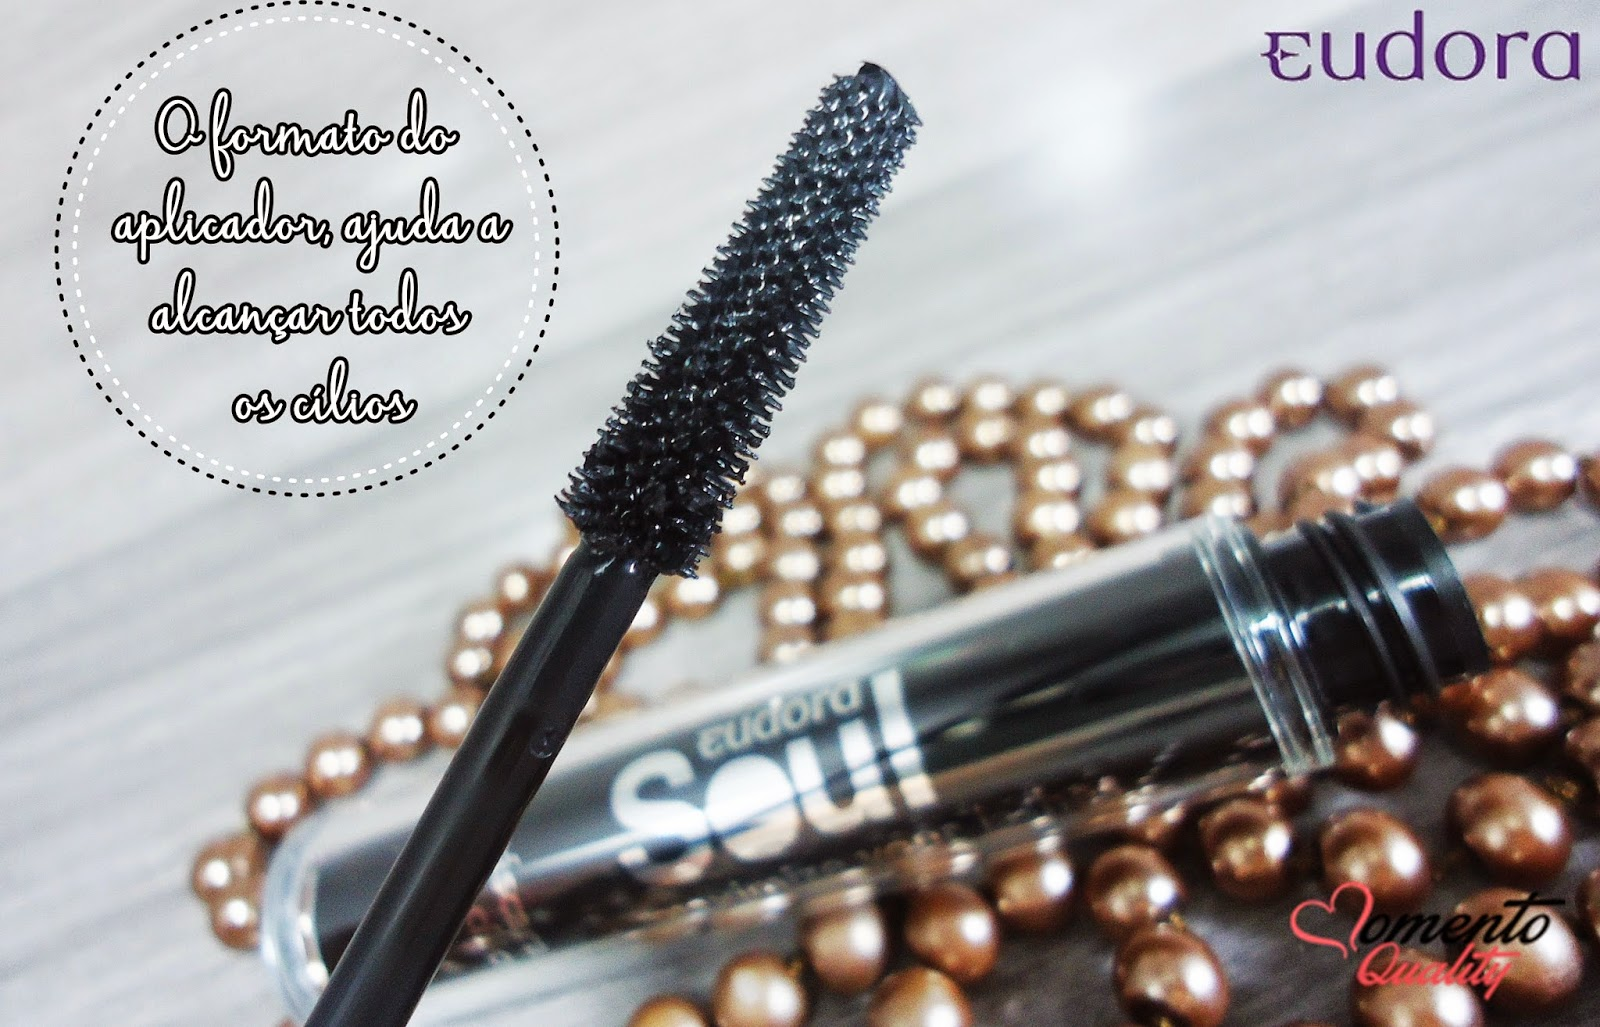 Mascara Maximize Your Lashes Turbo 5.0 Eudora